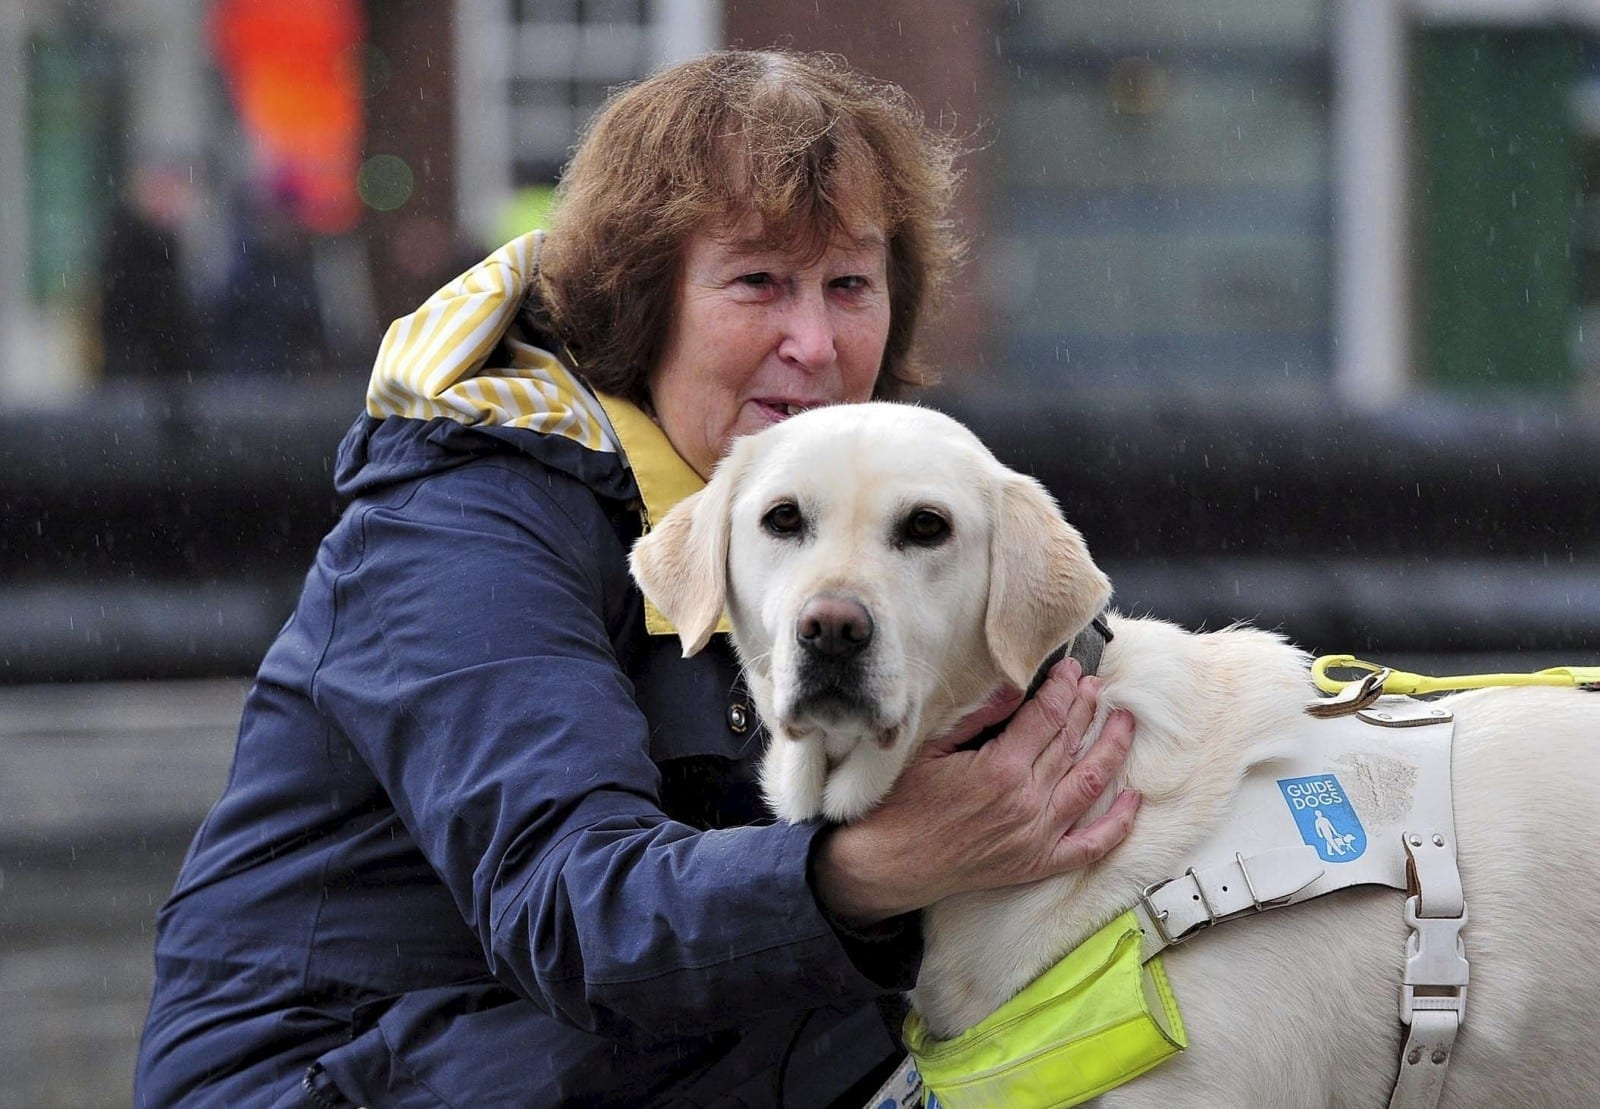 'Having A Sight Issue Is Difficult Enough Without This Added Stress' – Council Investigate Cabbie For Leaving Partially Sighted Pensioner Stranded After Refusing To Take Her Guide Dog